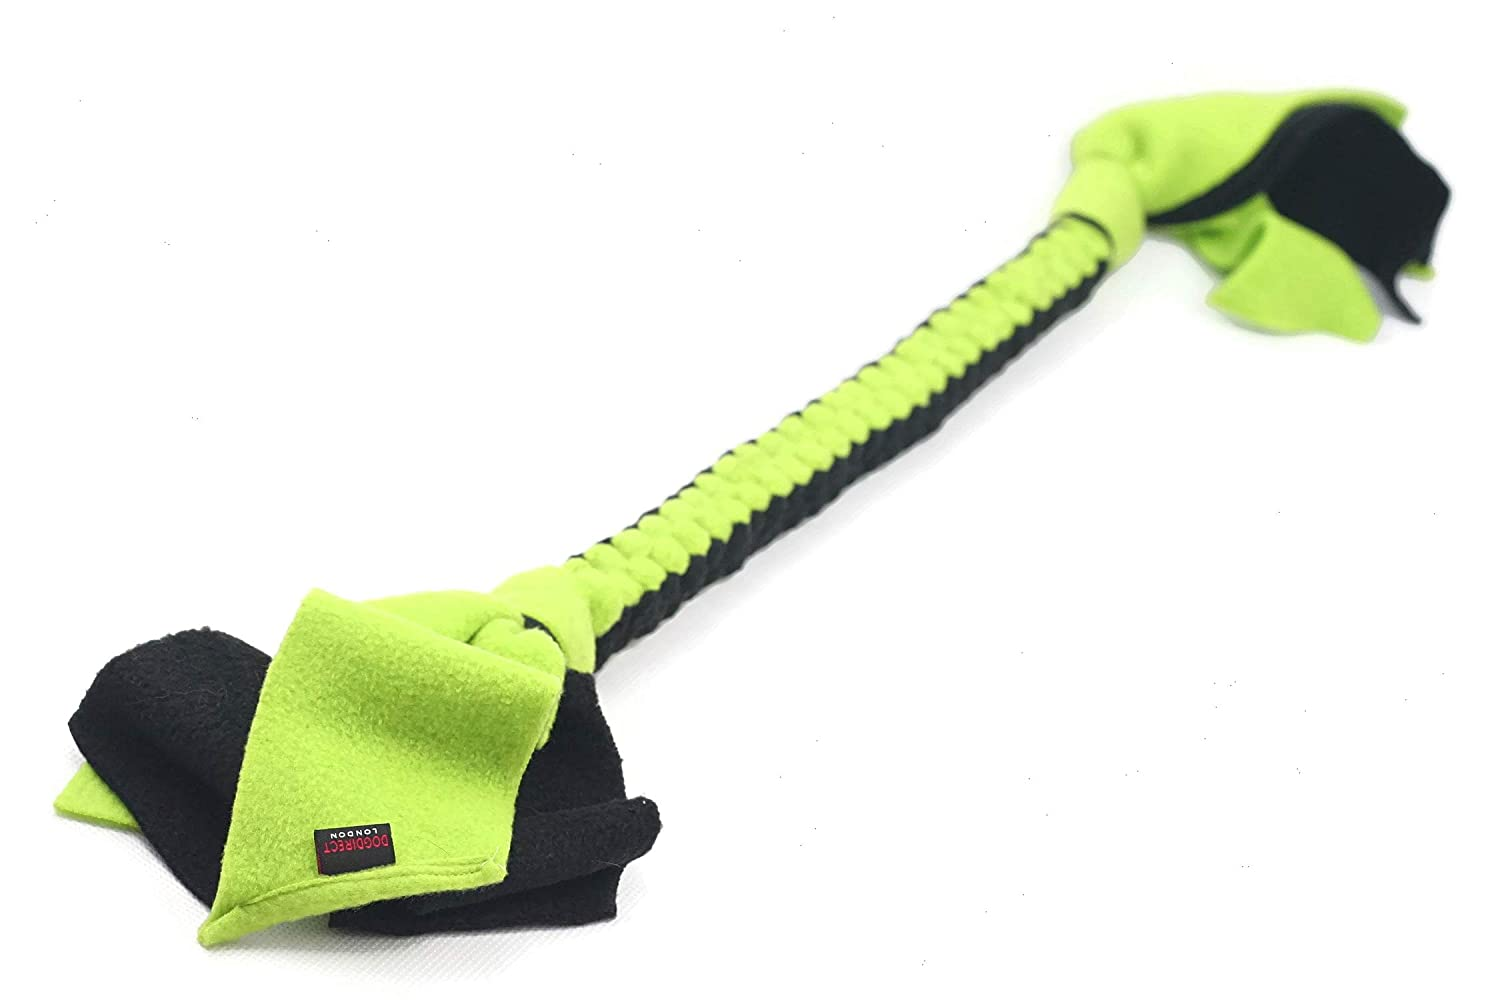 DOG TUG TOY Tugger Tug Chase Rope SMALL: 45cm//17in Soft plaited Flexible FLEECE DOG TOYS Ideal FOR TRAINING HAND MADE KS8 PUPPY PLAY DogDirect London Small, Green-yellow LARGE: 75cm//29in